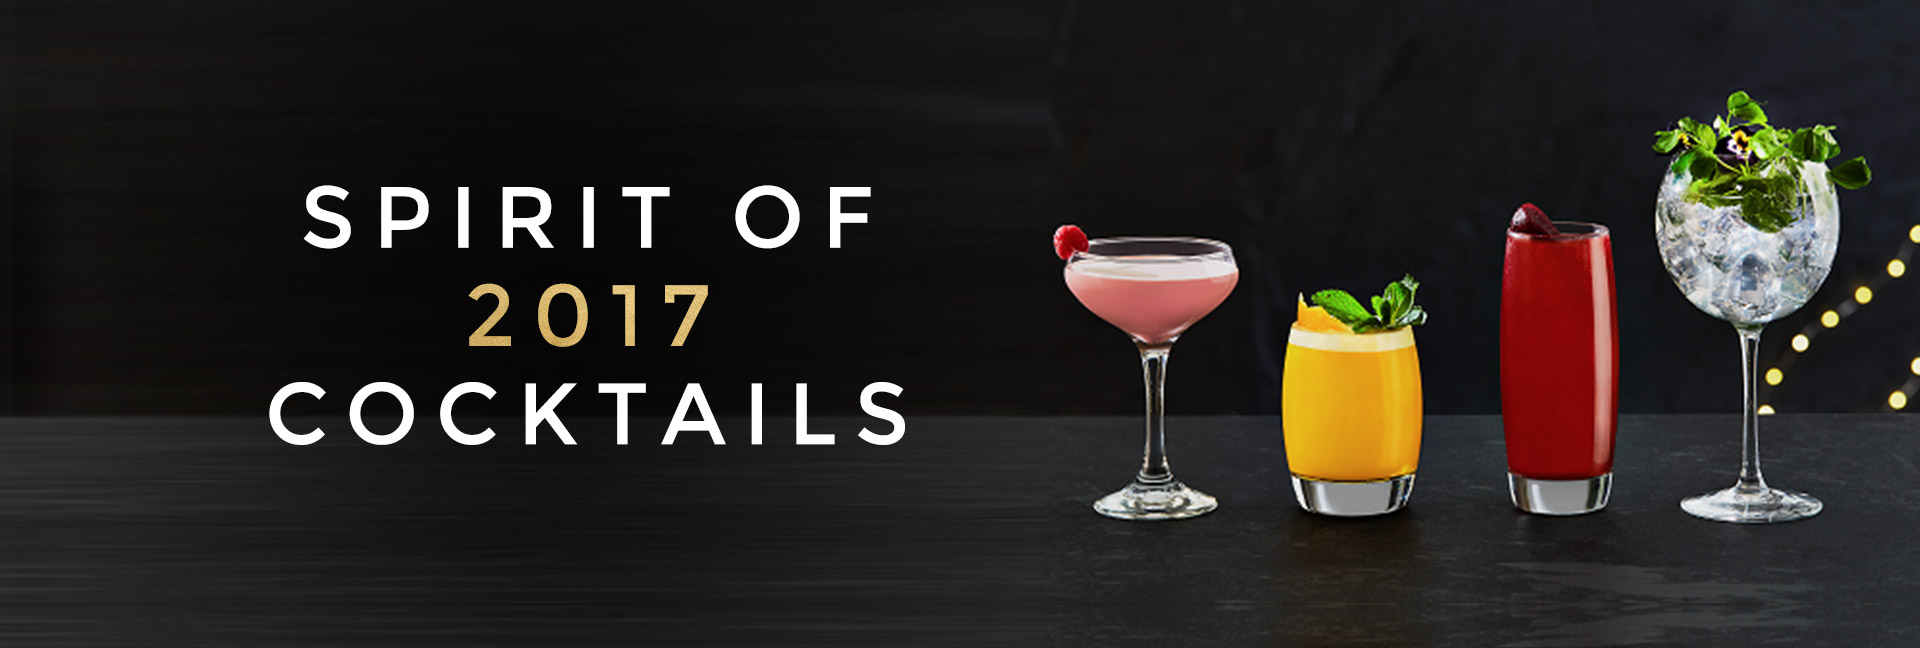 Spirit of 2017 cocktails at All Bar One Ludgate Hill